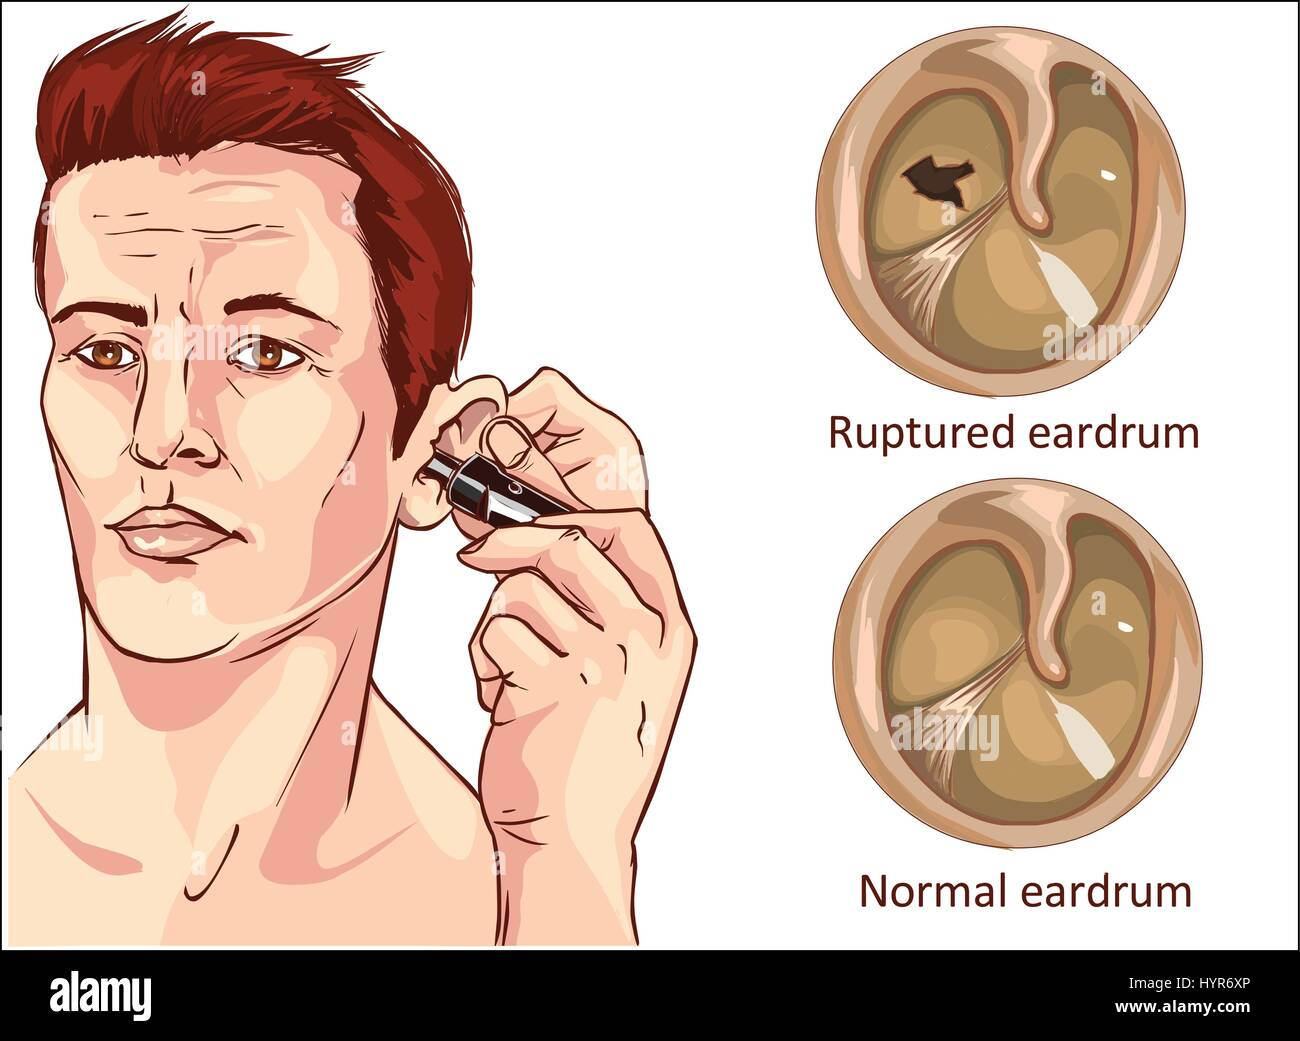 Save Download Preview ruptured eardrum and normal eardrum vector illustration - Stock Image